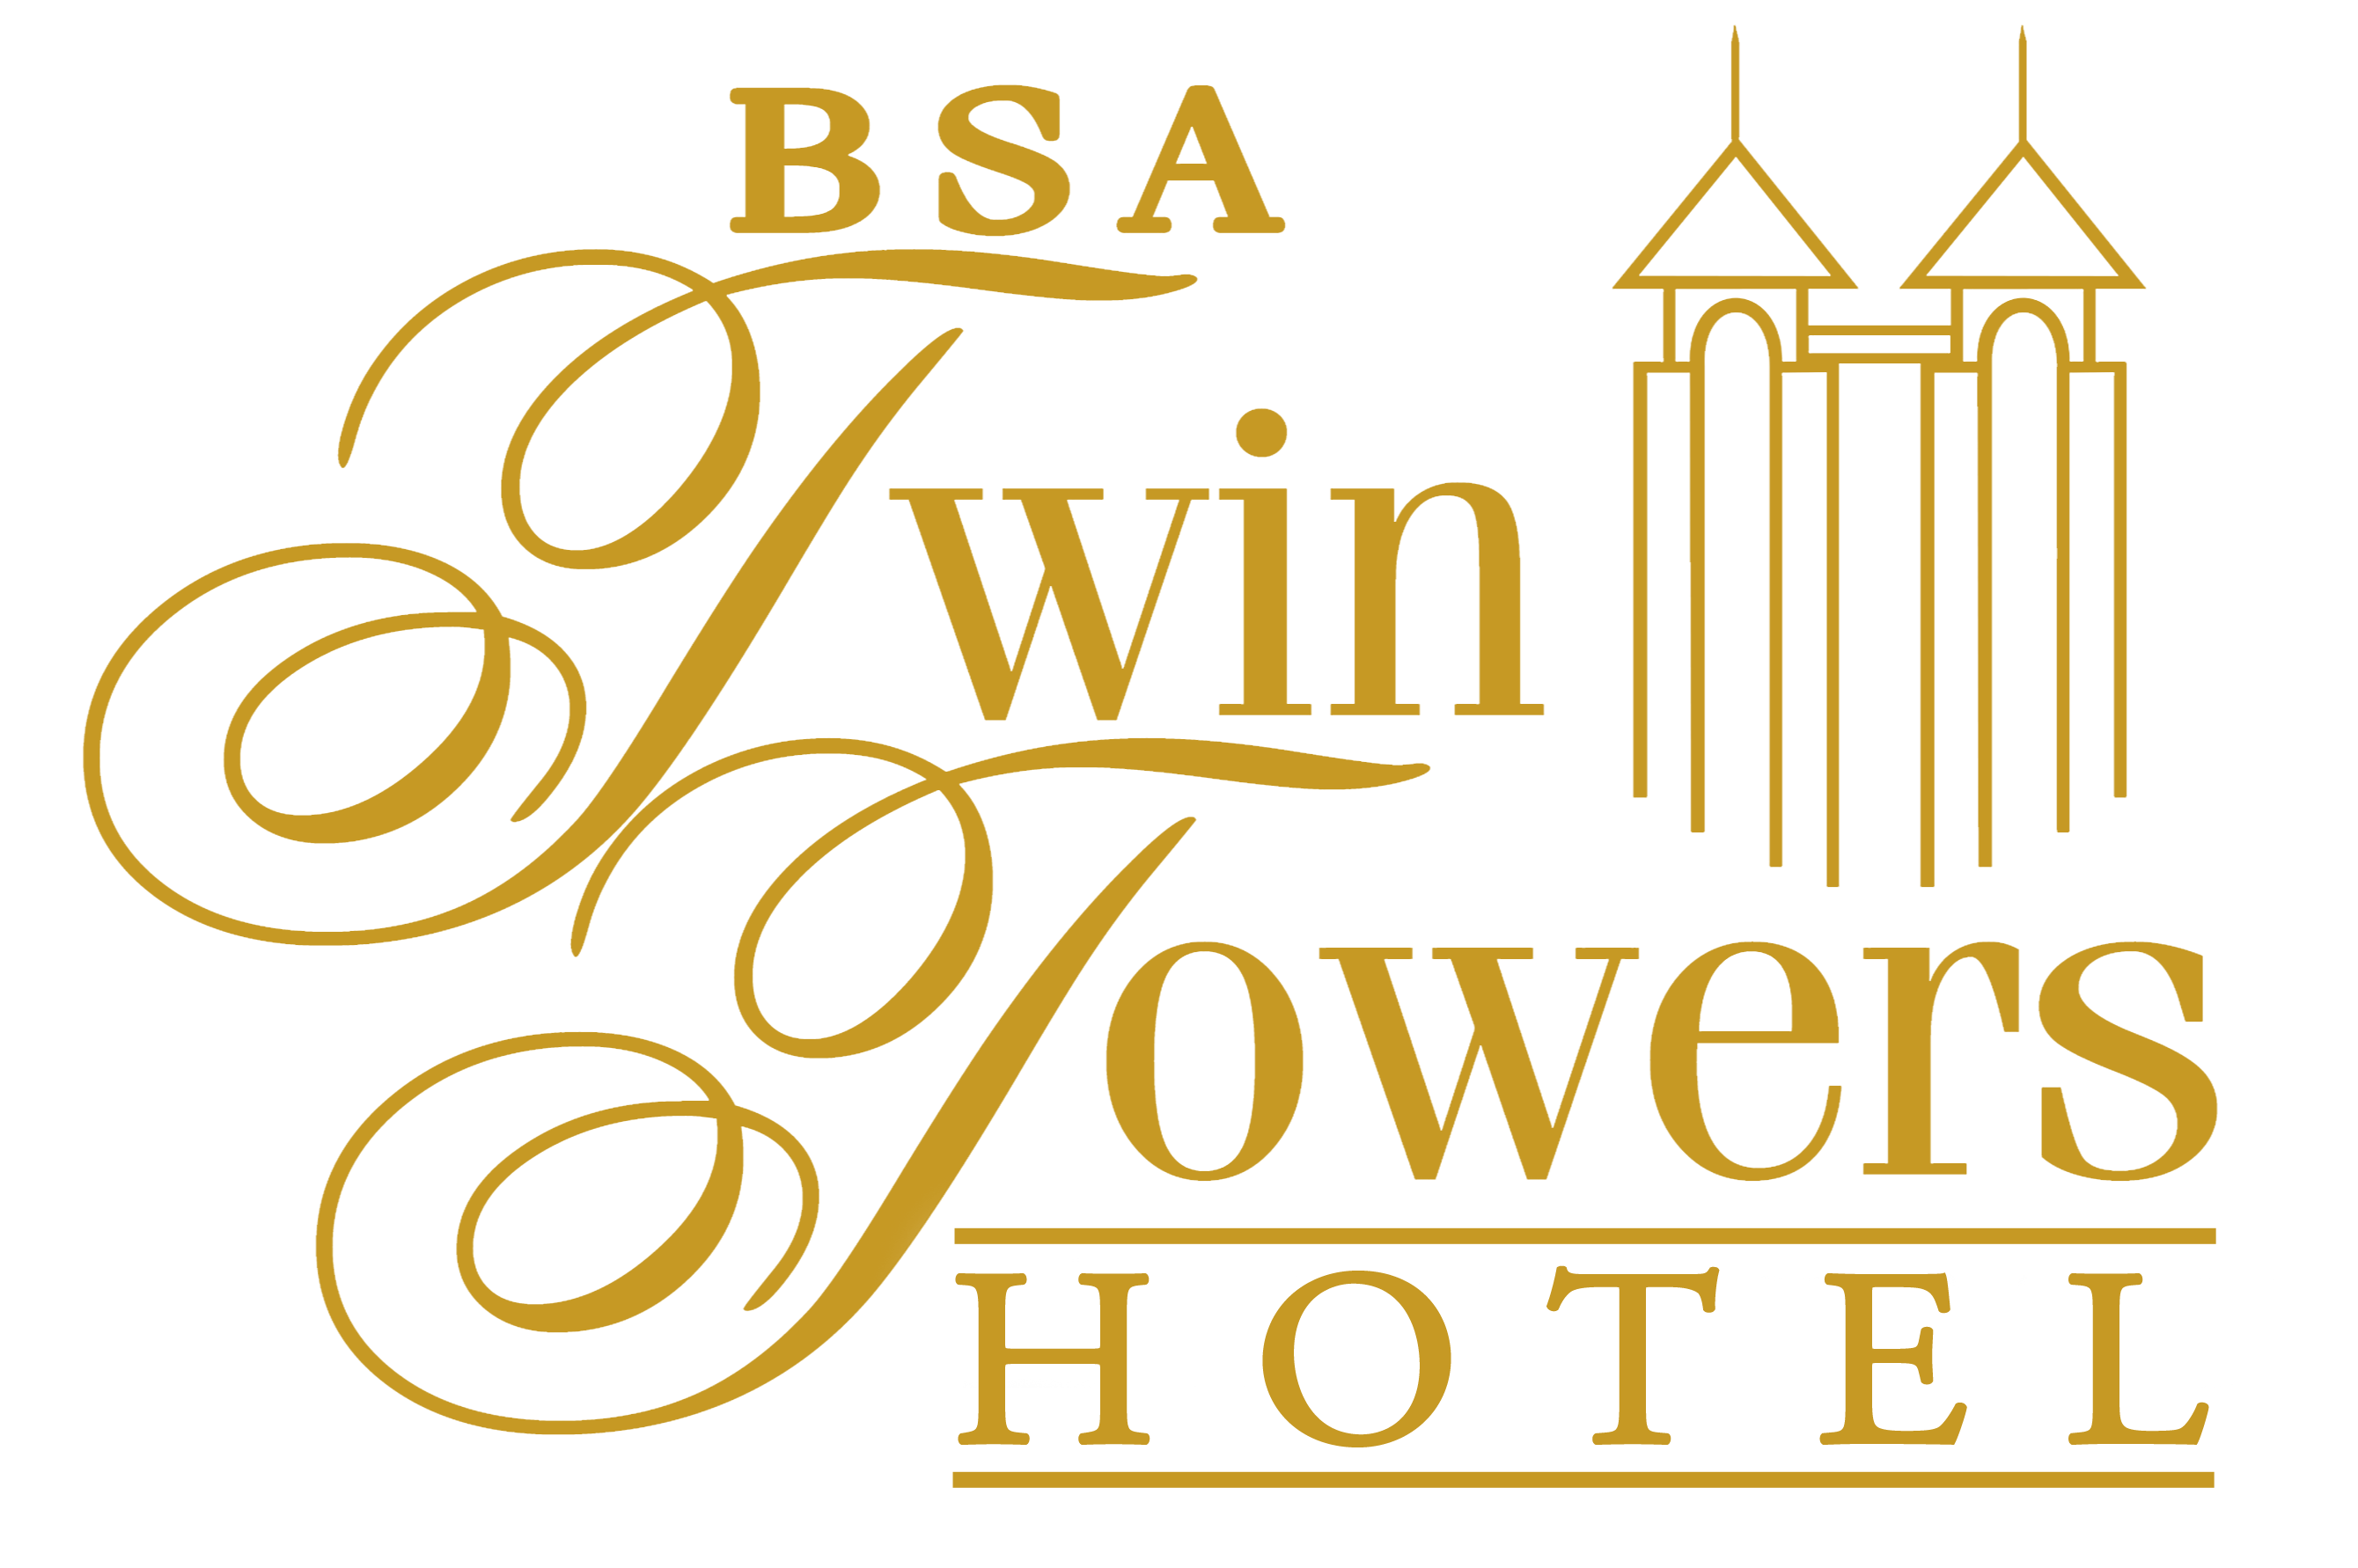 BSA TWIN TOWERS - ST. FRANCIS SQUARE